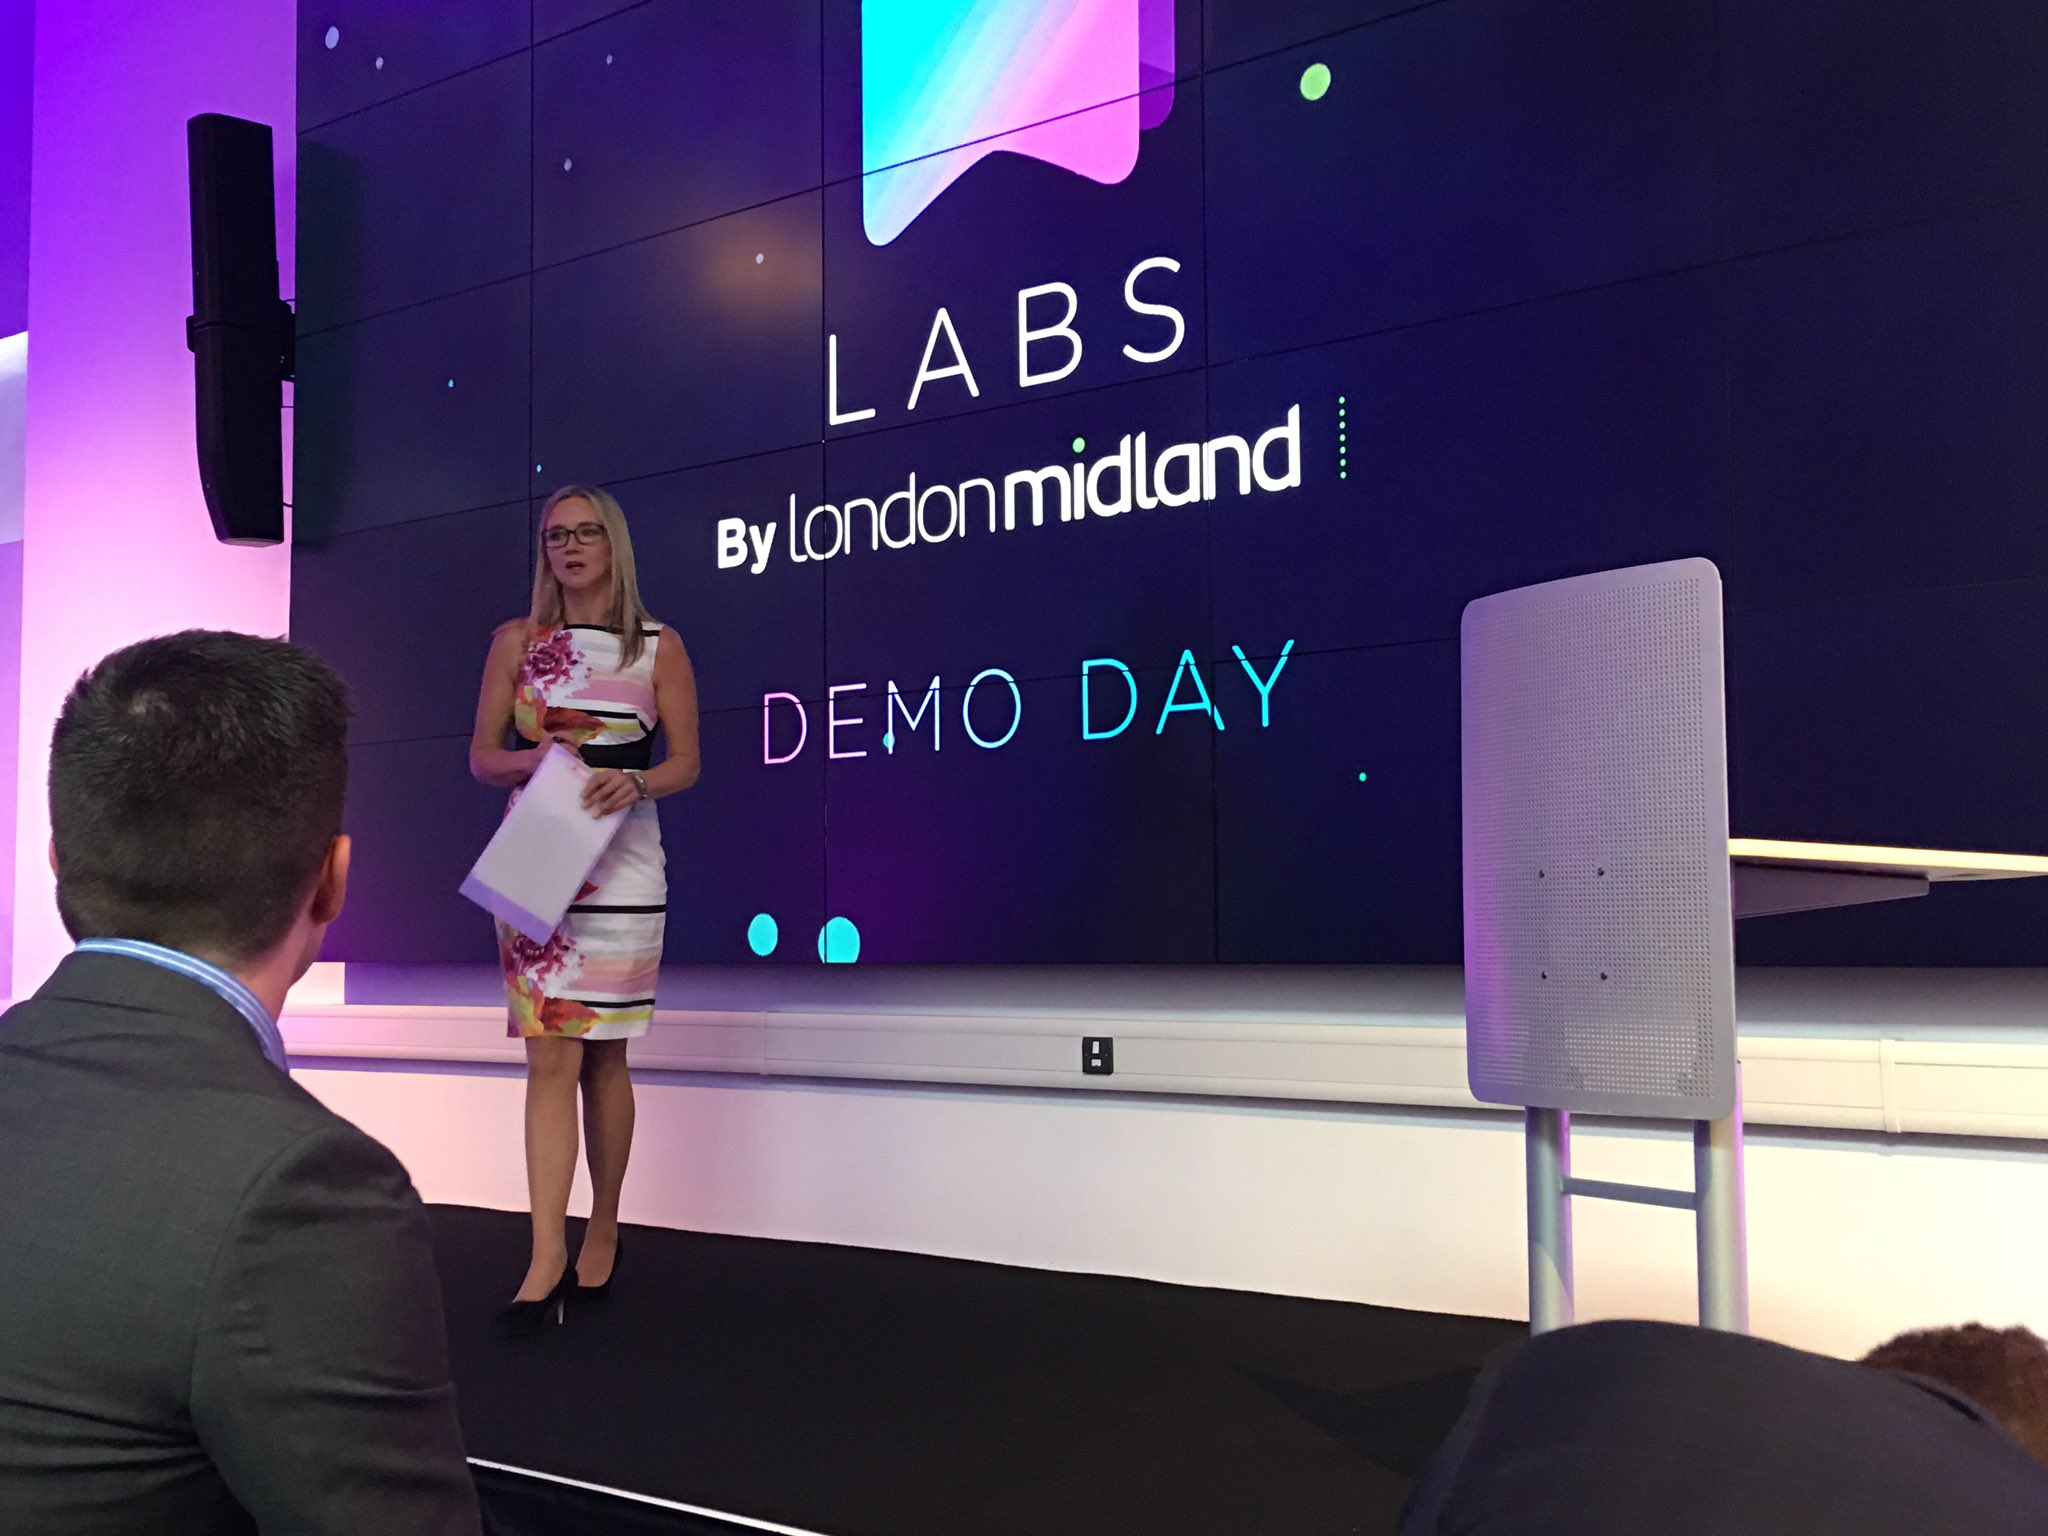 Excited to see and hear all of the pitches this afternoon at the #LMLabsDemo https://t.co/qr7X29g3xn